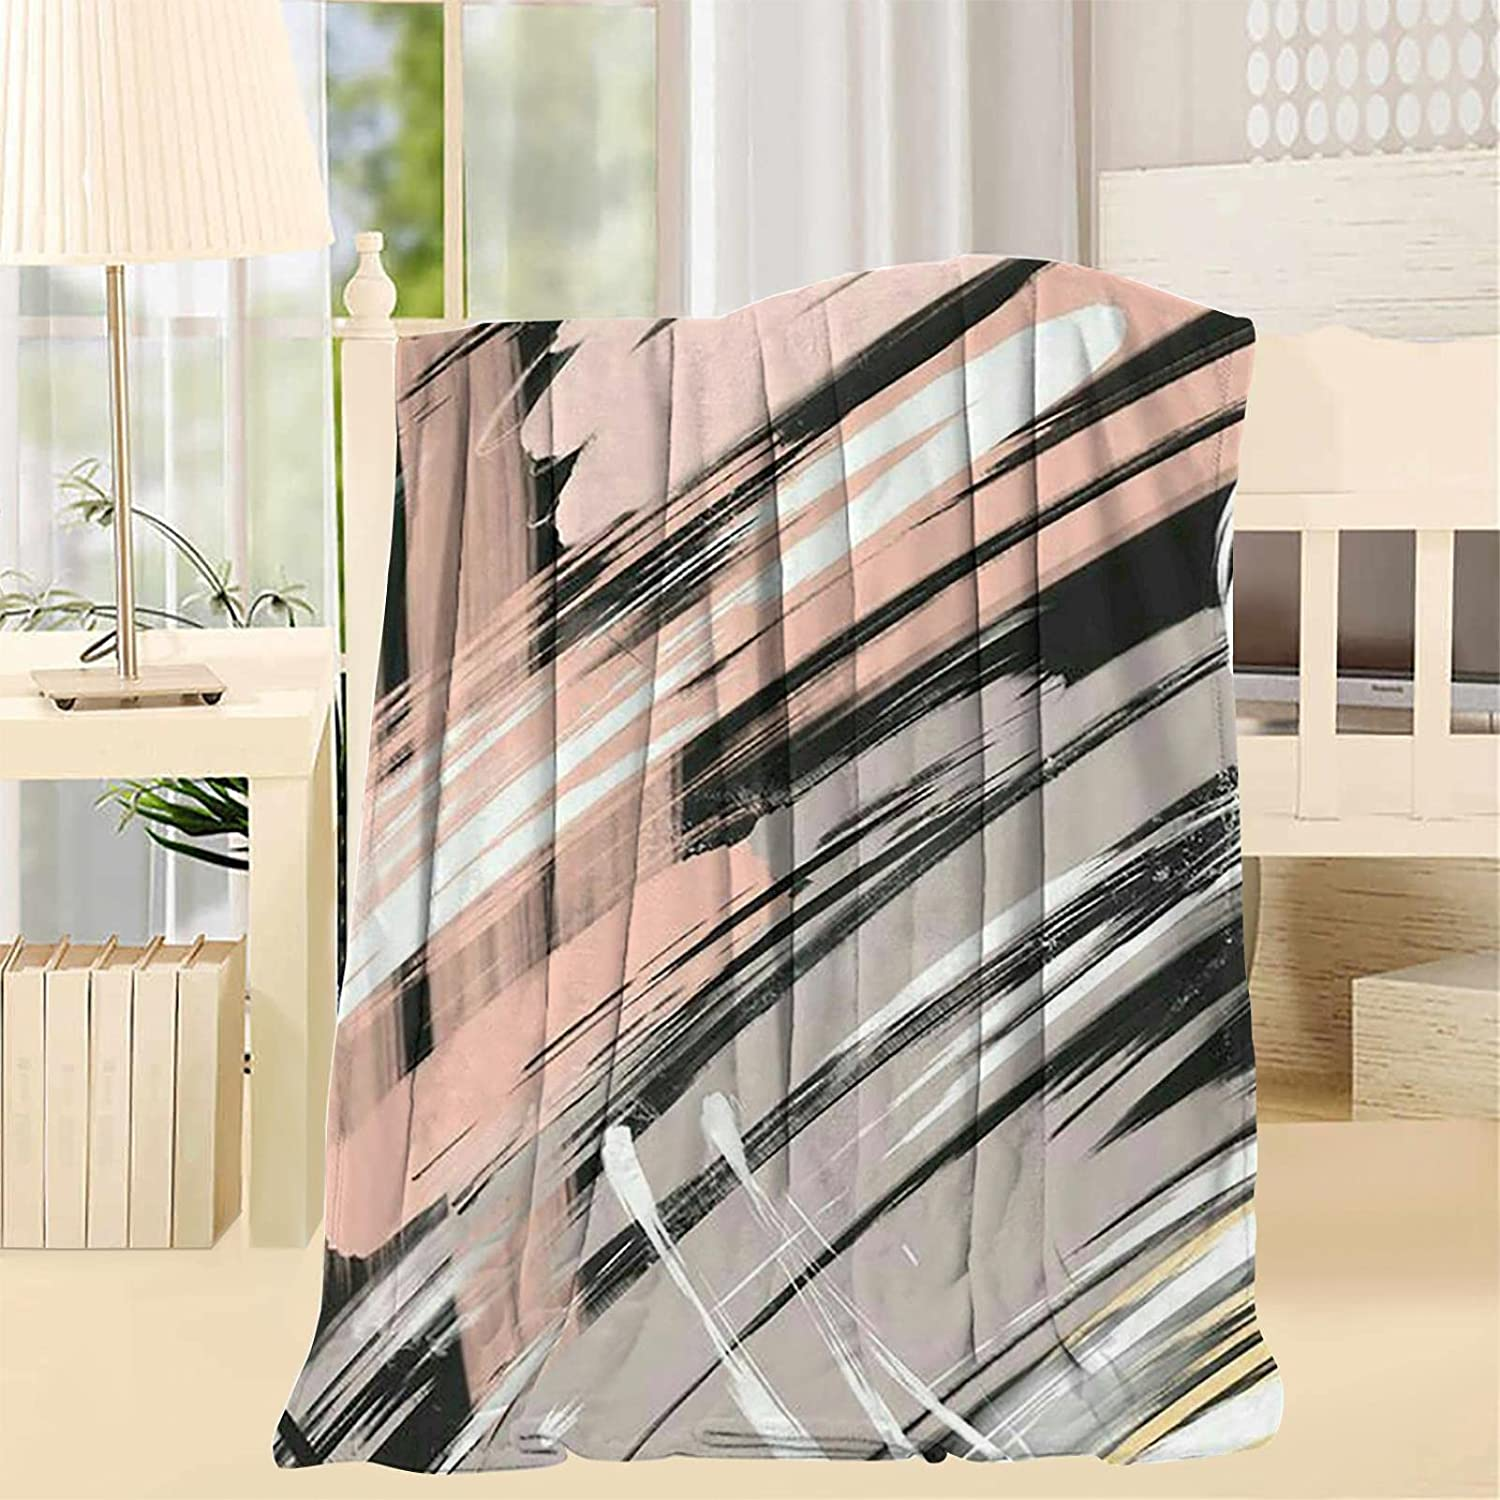 kilonp Abstract Super beauty product restock Houston Mall quality top Throw Blanket Lightweight Couch Queen Size for B